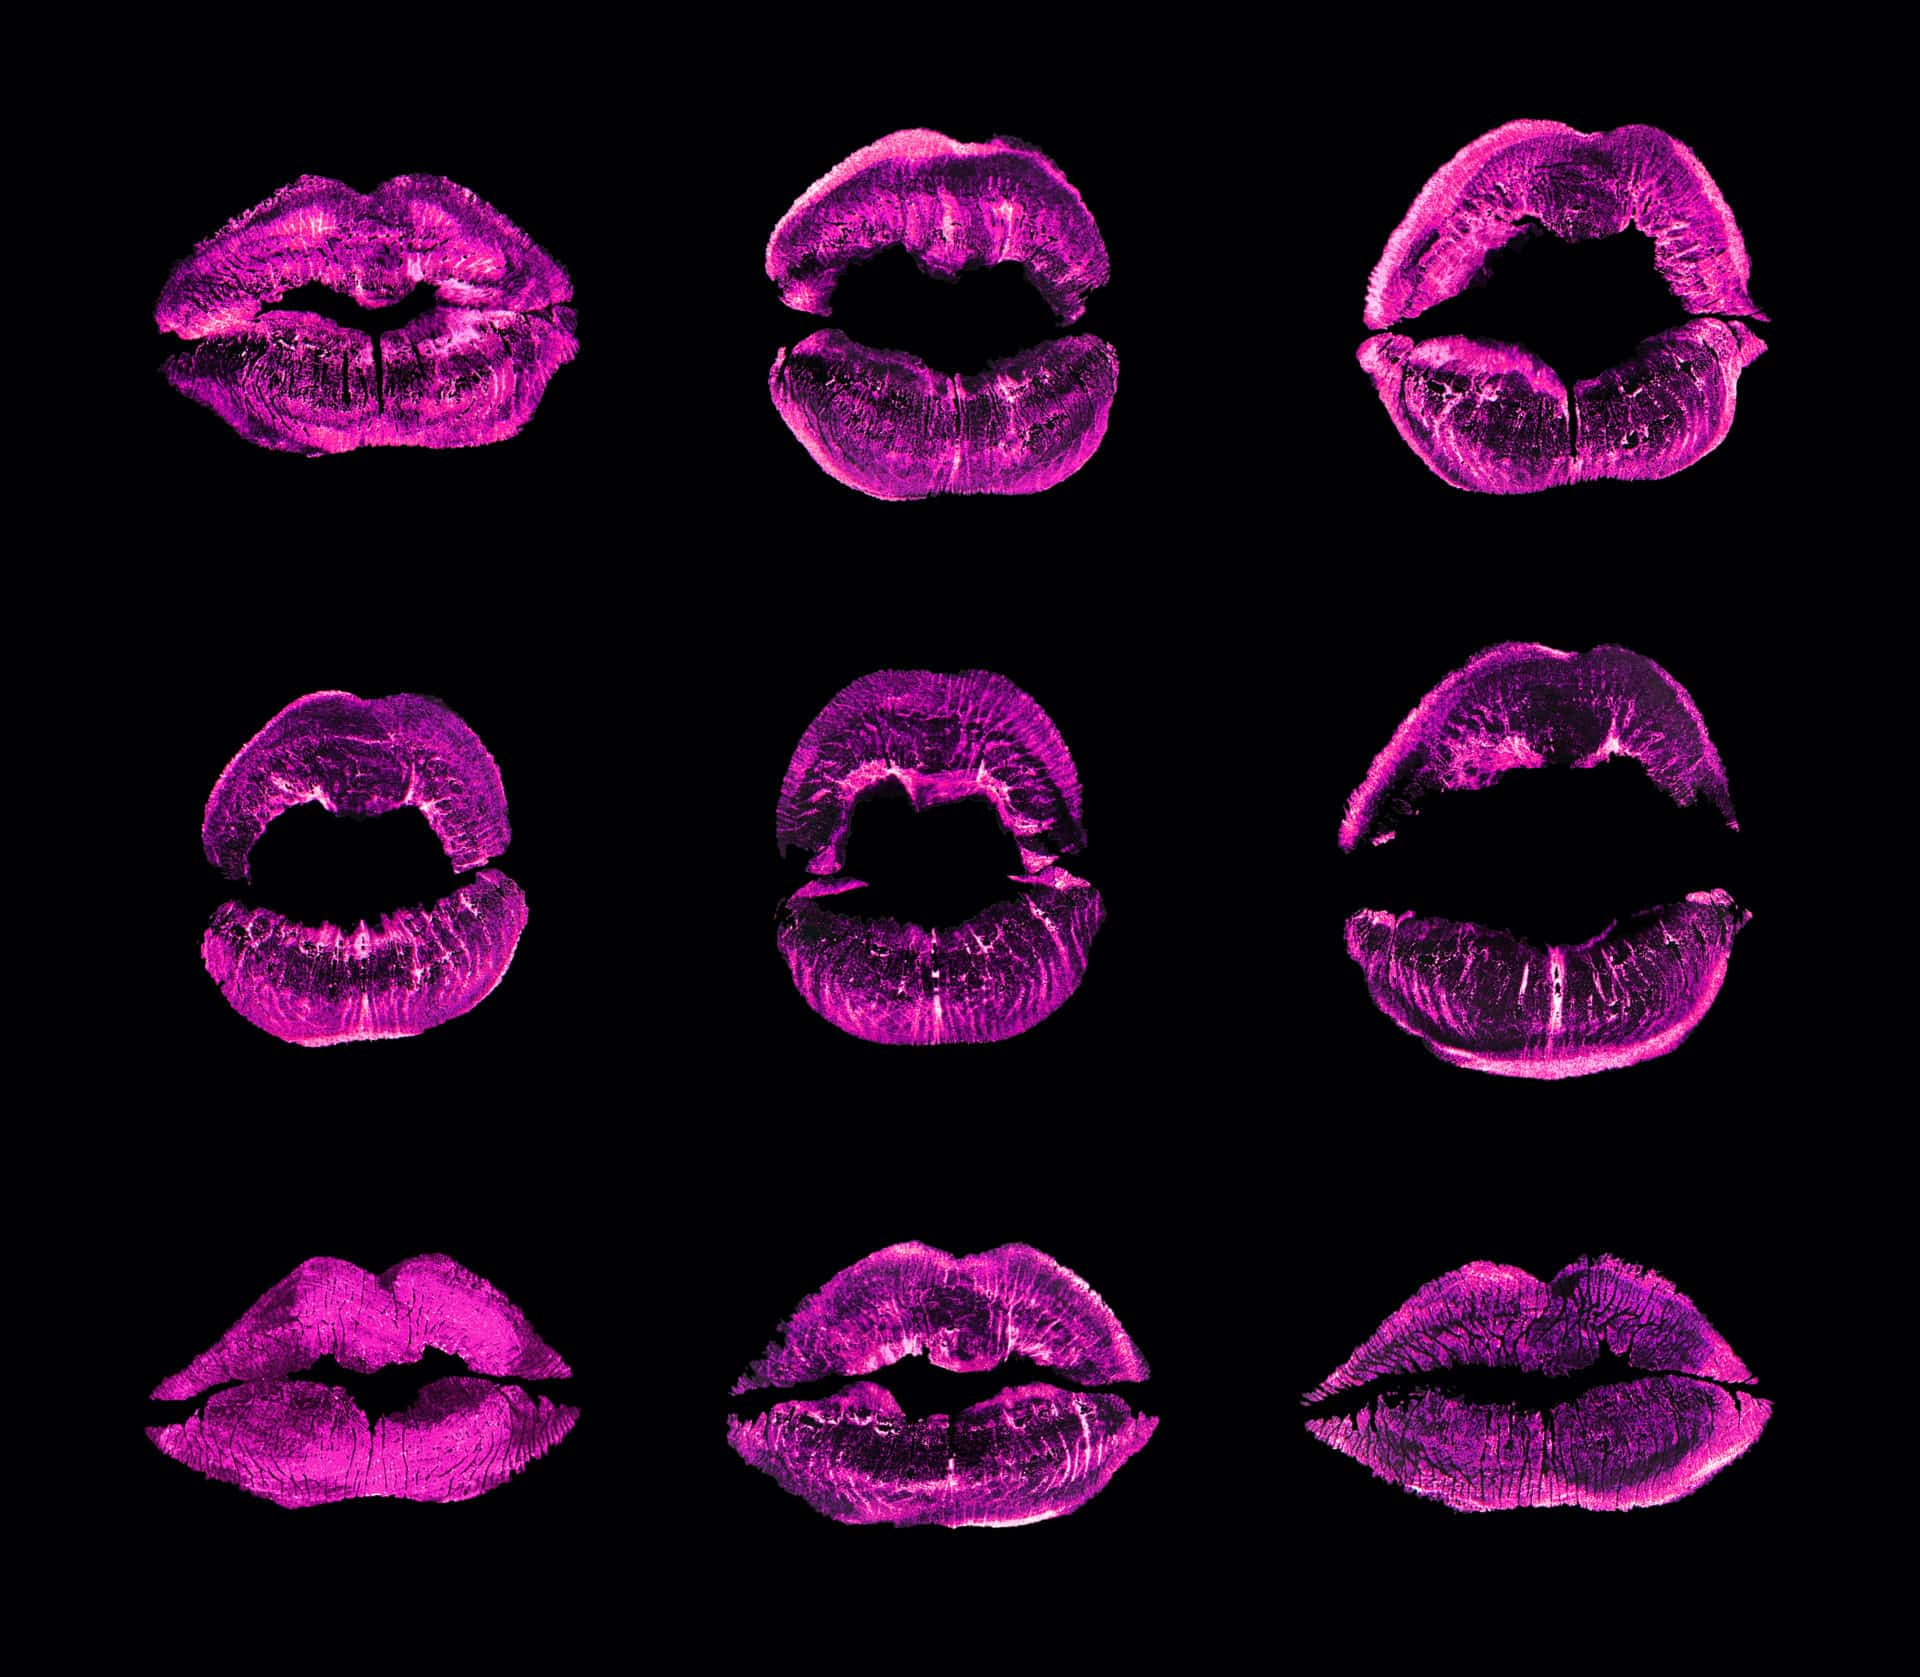 Pink lipstick kiss print set black background isolated closeup, neon purple sexy lips mark makeup collection, red female kisses imprint, beauty make up wallpaper, fashion banner, love & passion symbol